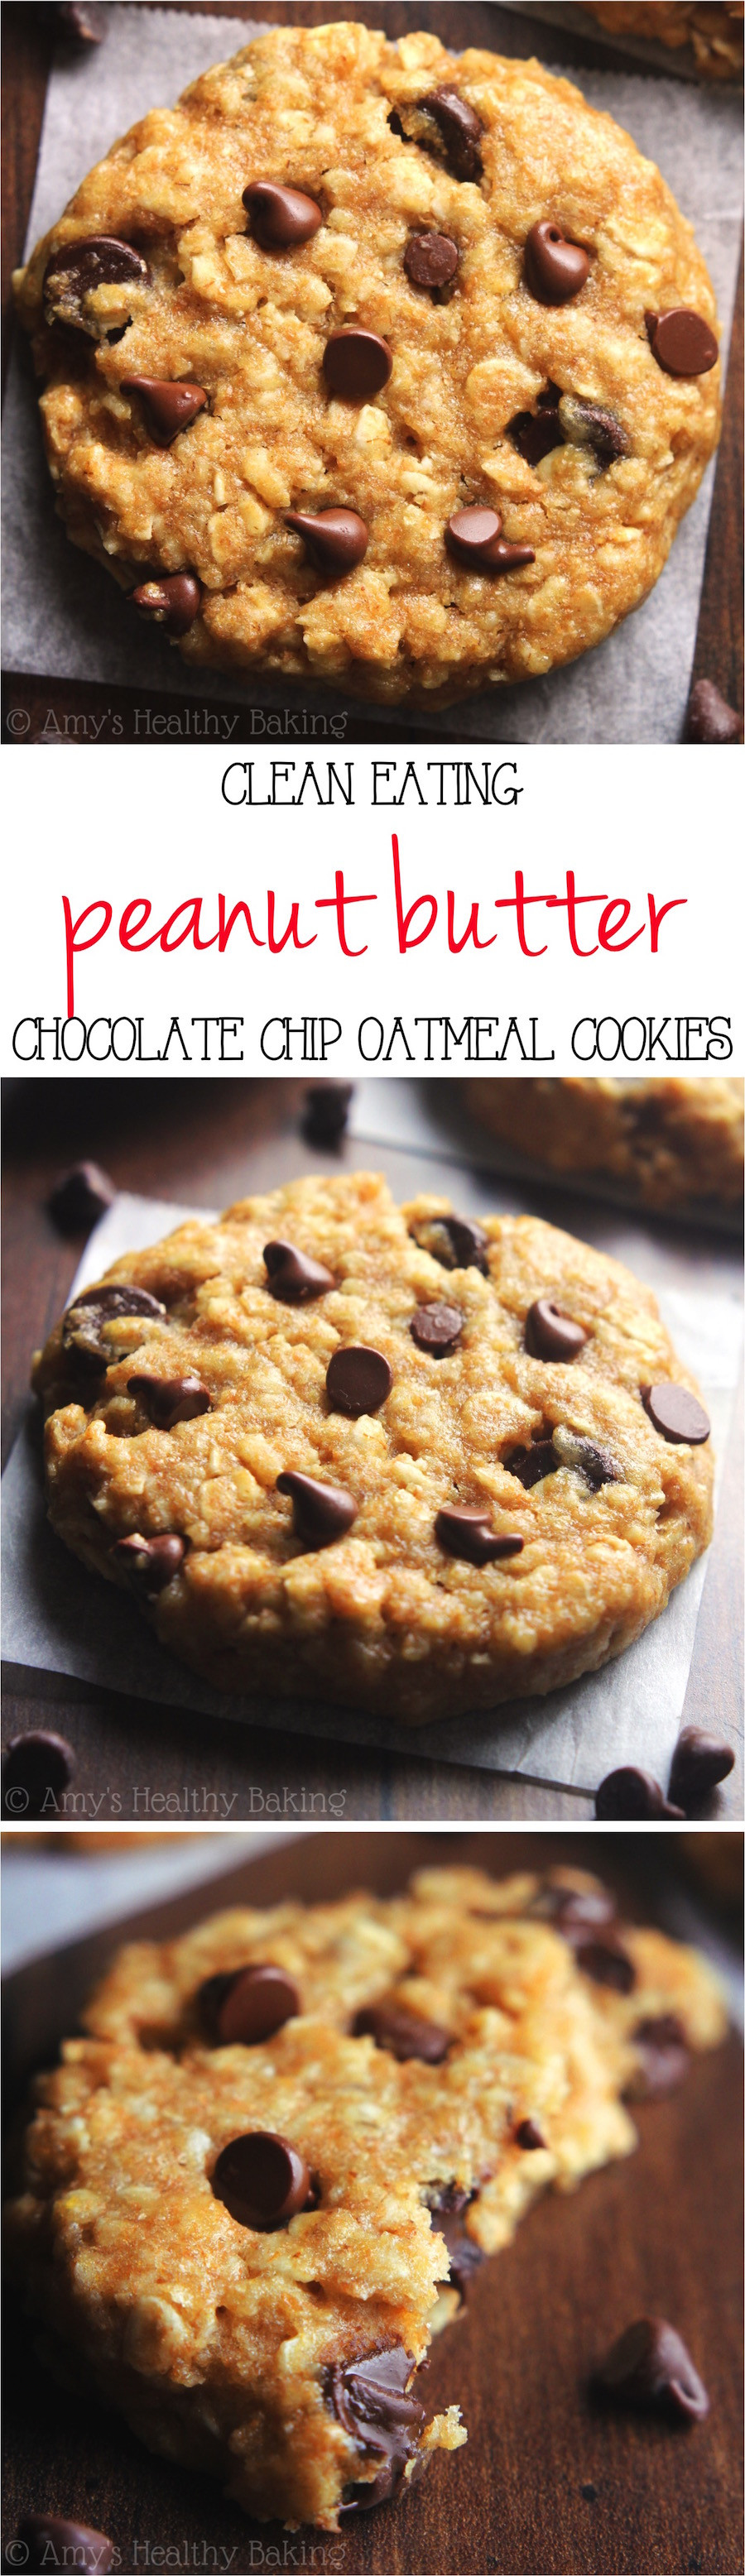 Healthy Peanut Butter Chocolate Chip Cookies  healthy oatmeal peanut butter chocolate chip cookies recipe